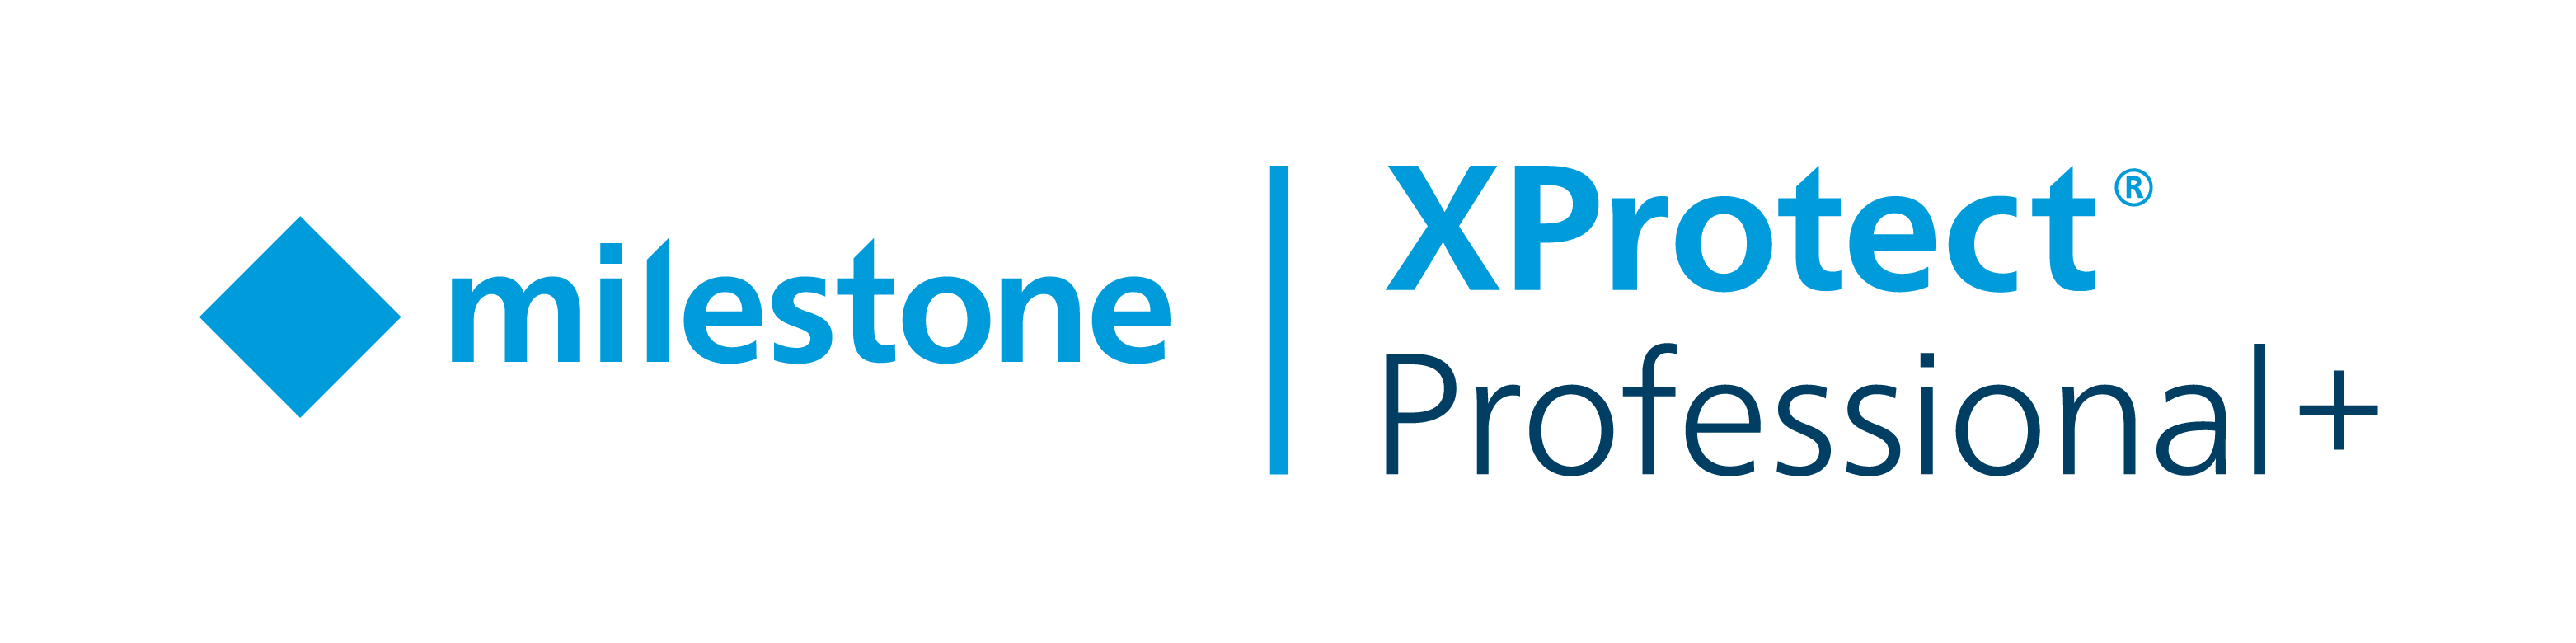 XProtect® Professional+